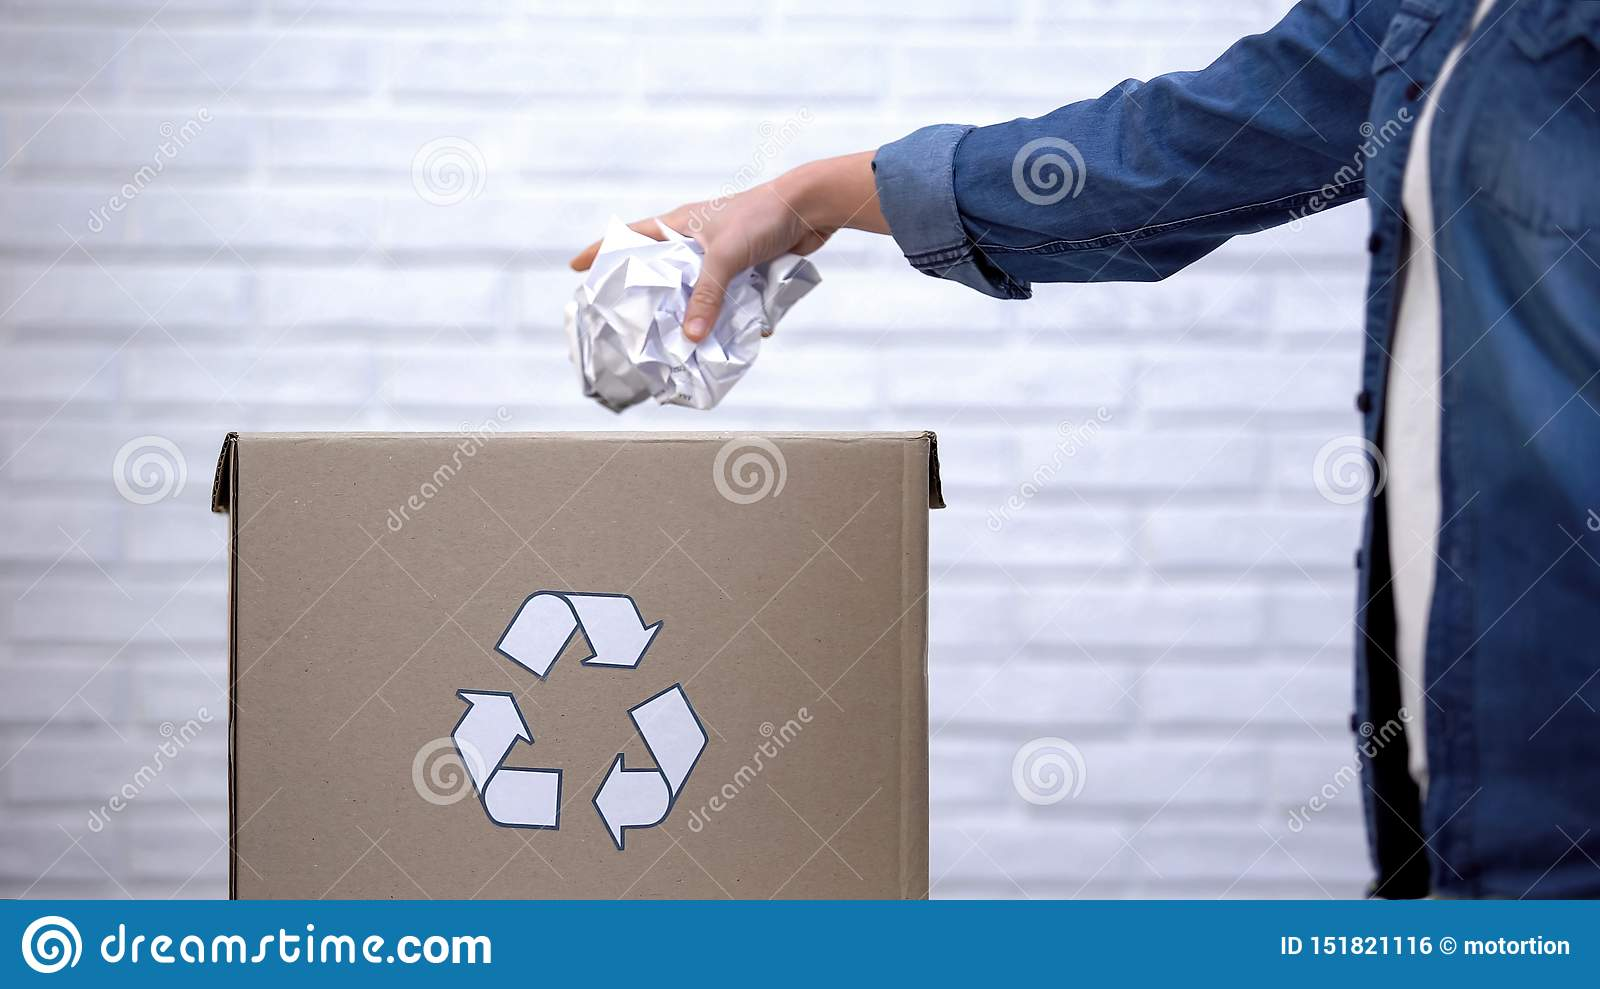 Person throwing paper into trash bin, waste sorting concept, recycling system